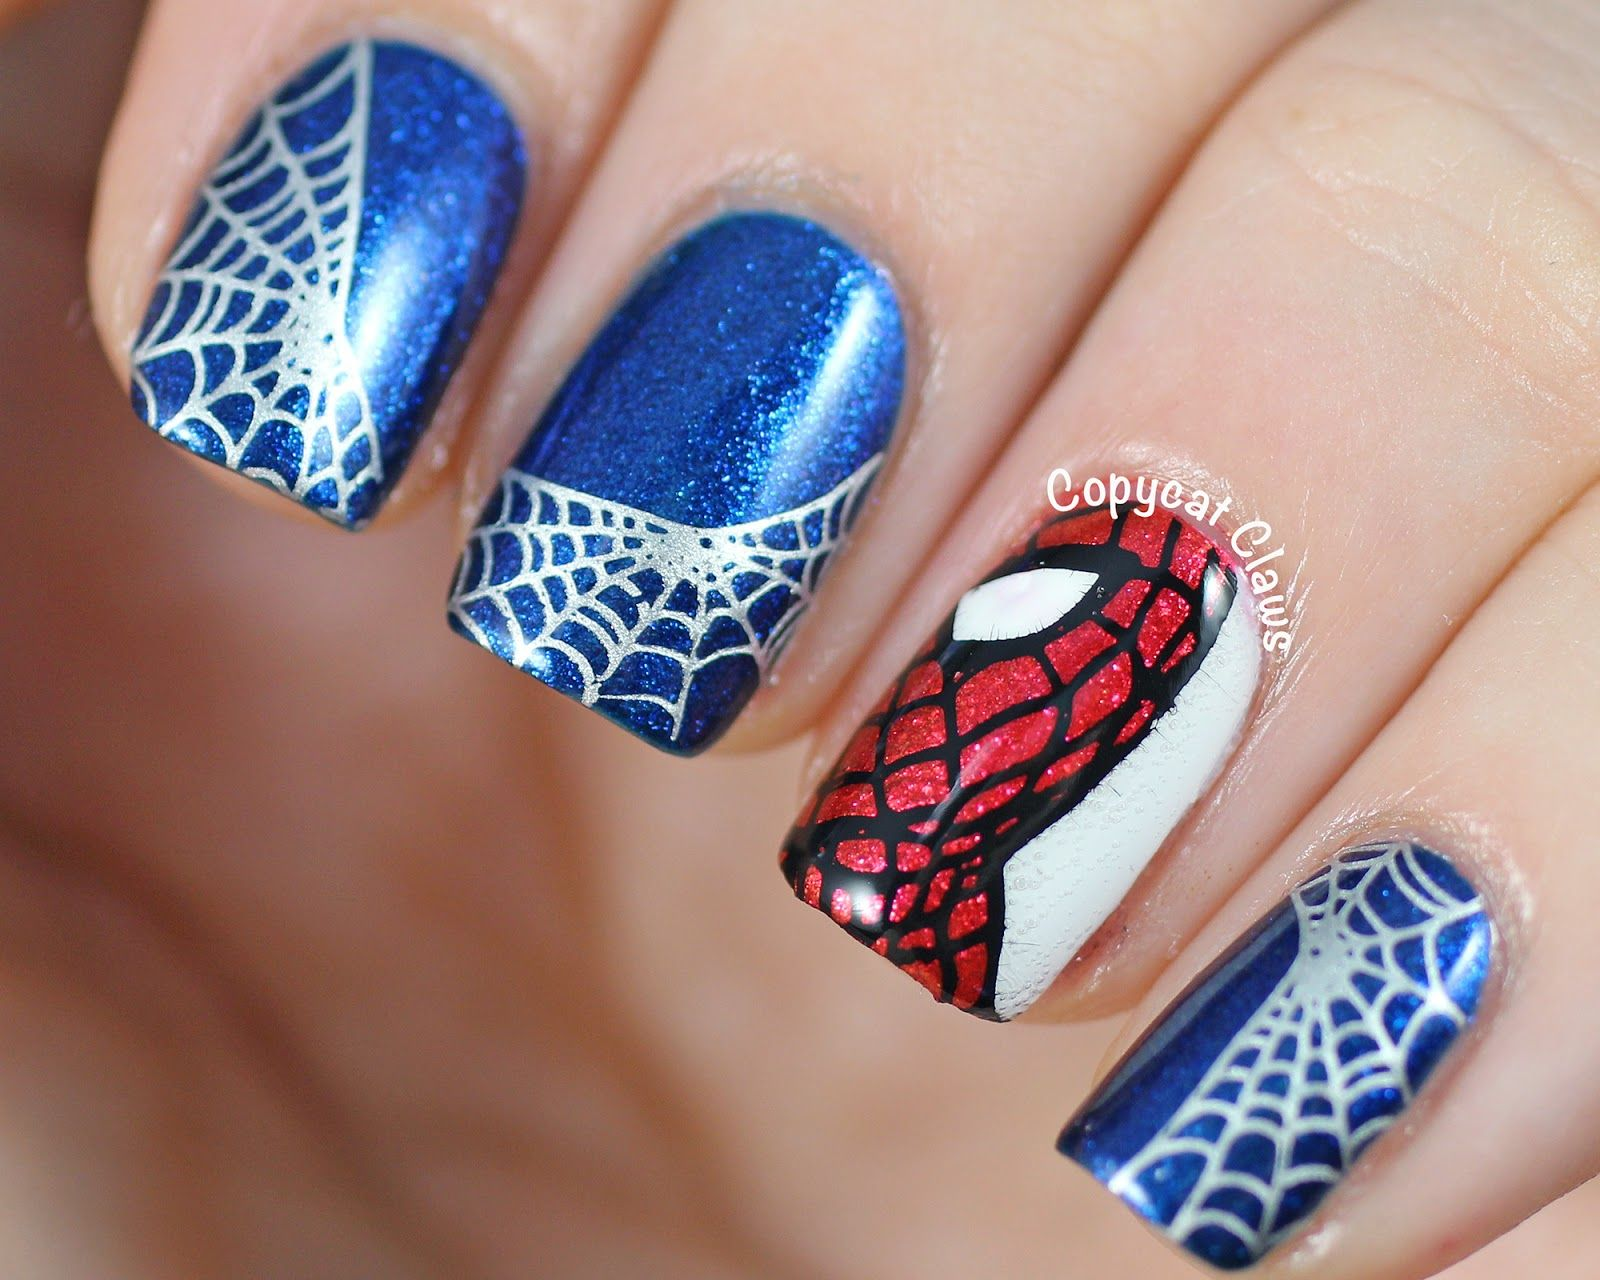 Copycat claws spider man nail nails nailart expensive nails copycat claws spider man nail nails nailart prinsesfo Choice Image